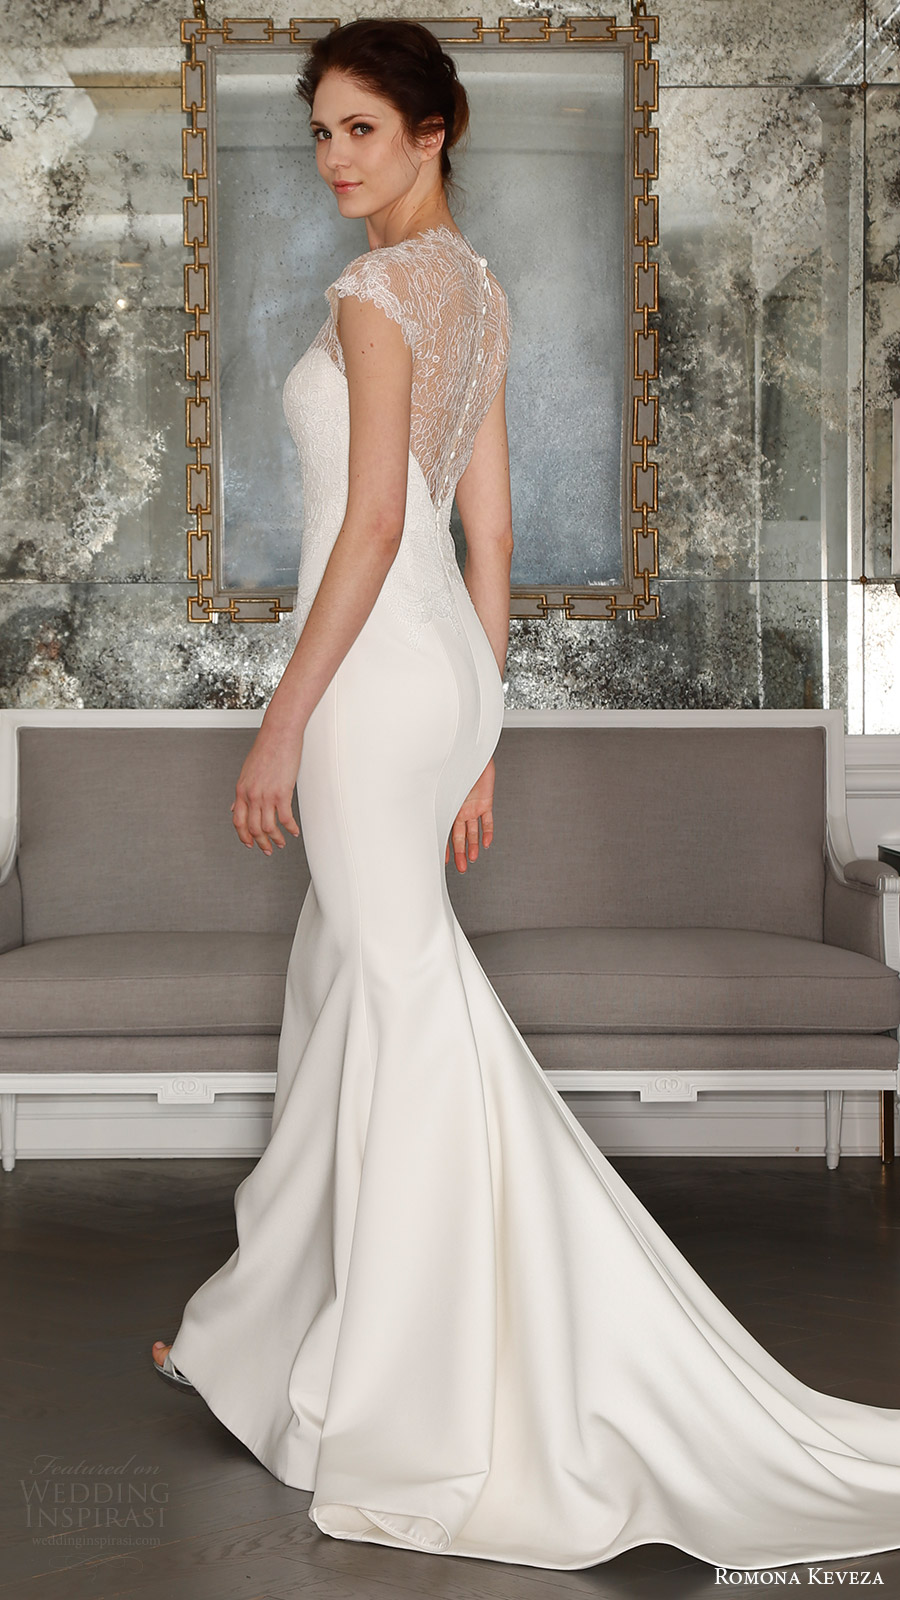 romona keveza bridal spring 2017 cap sleeves sweetheart illusion high neck sheath wedding dress (rk7404) bv sheer back train